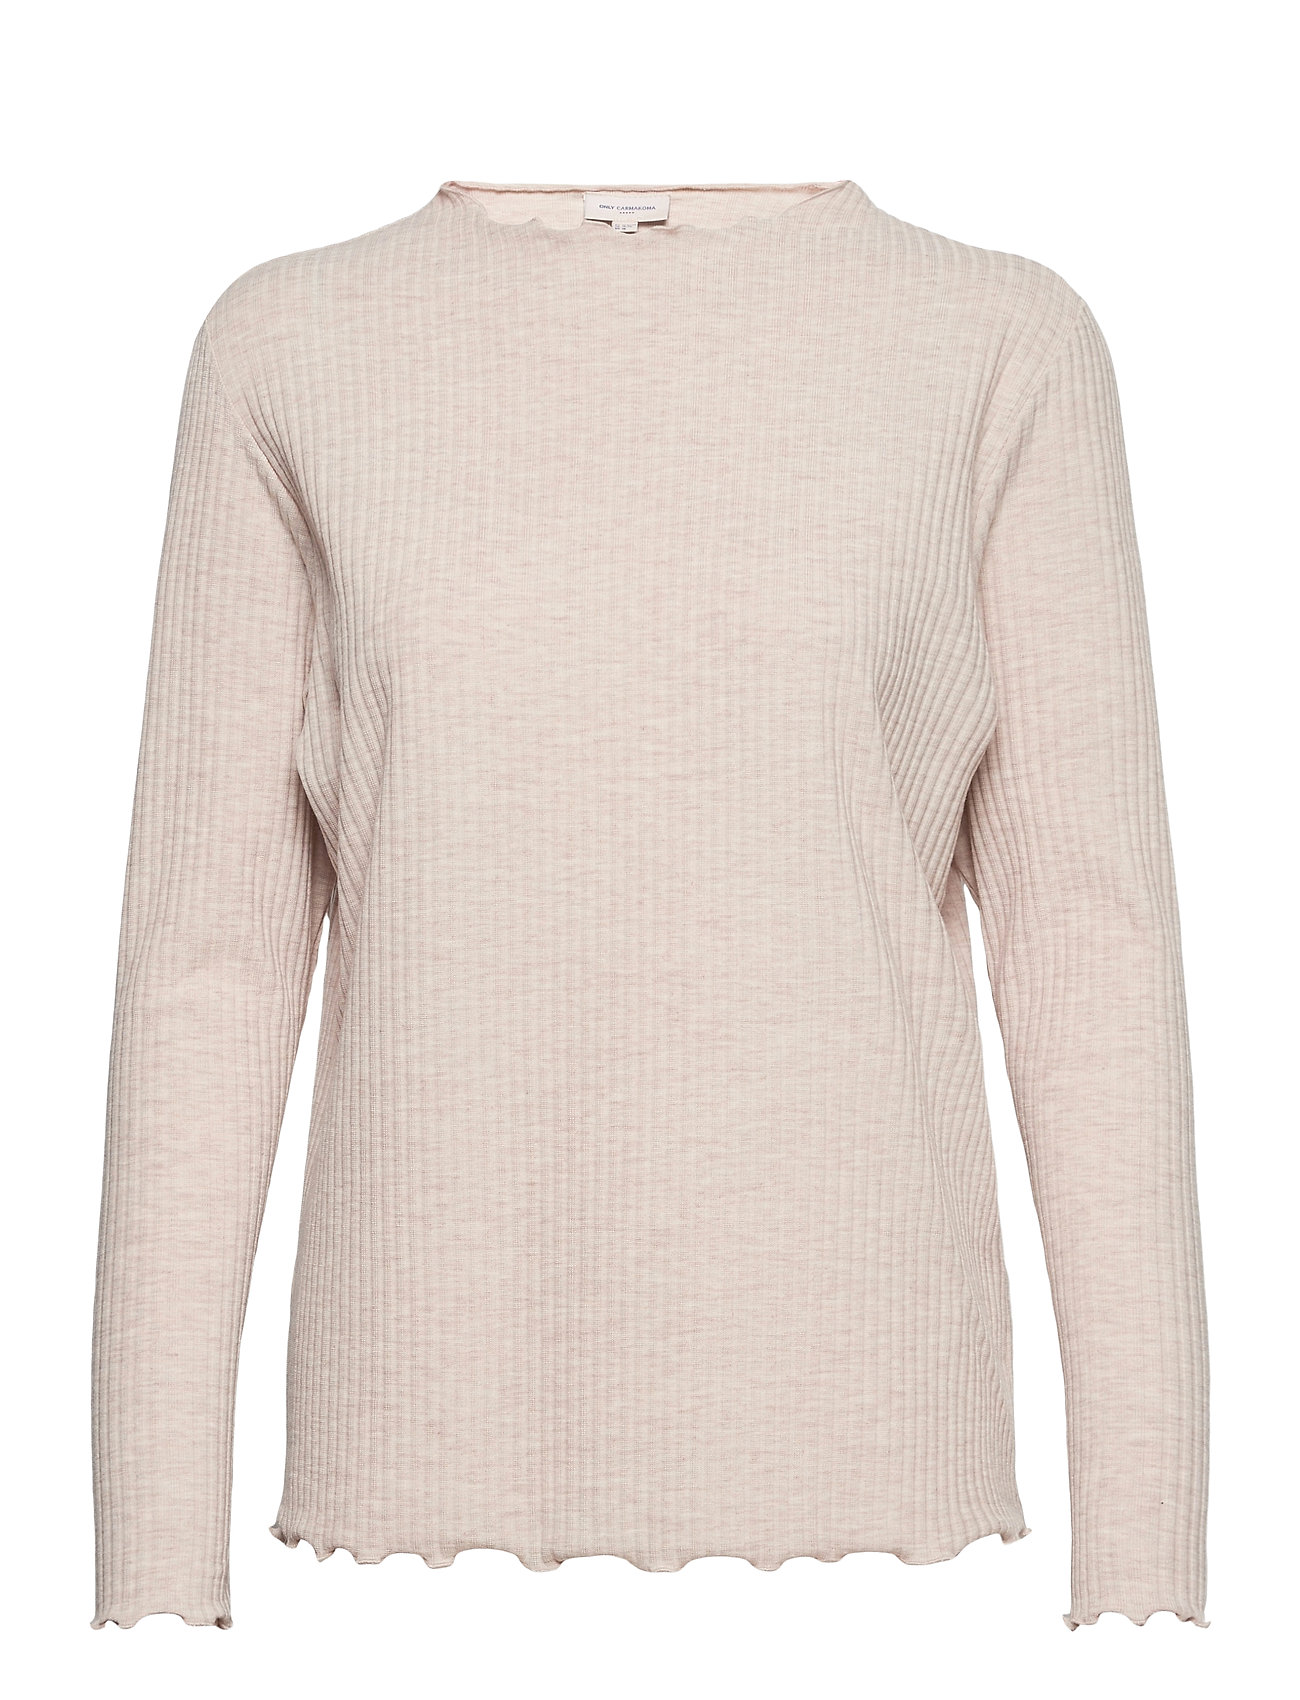 Image of Carally Ls High Neck Top Ess Langærmet T-shirt Hvid ONLY Carmakoma (3470938735)